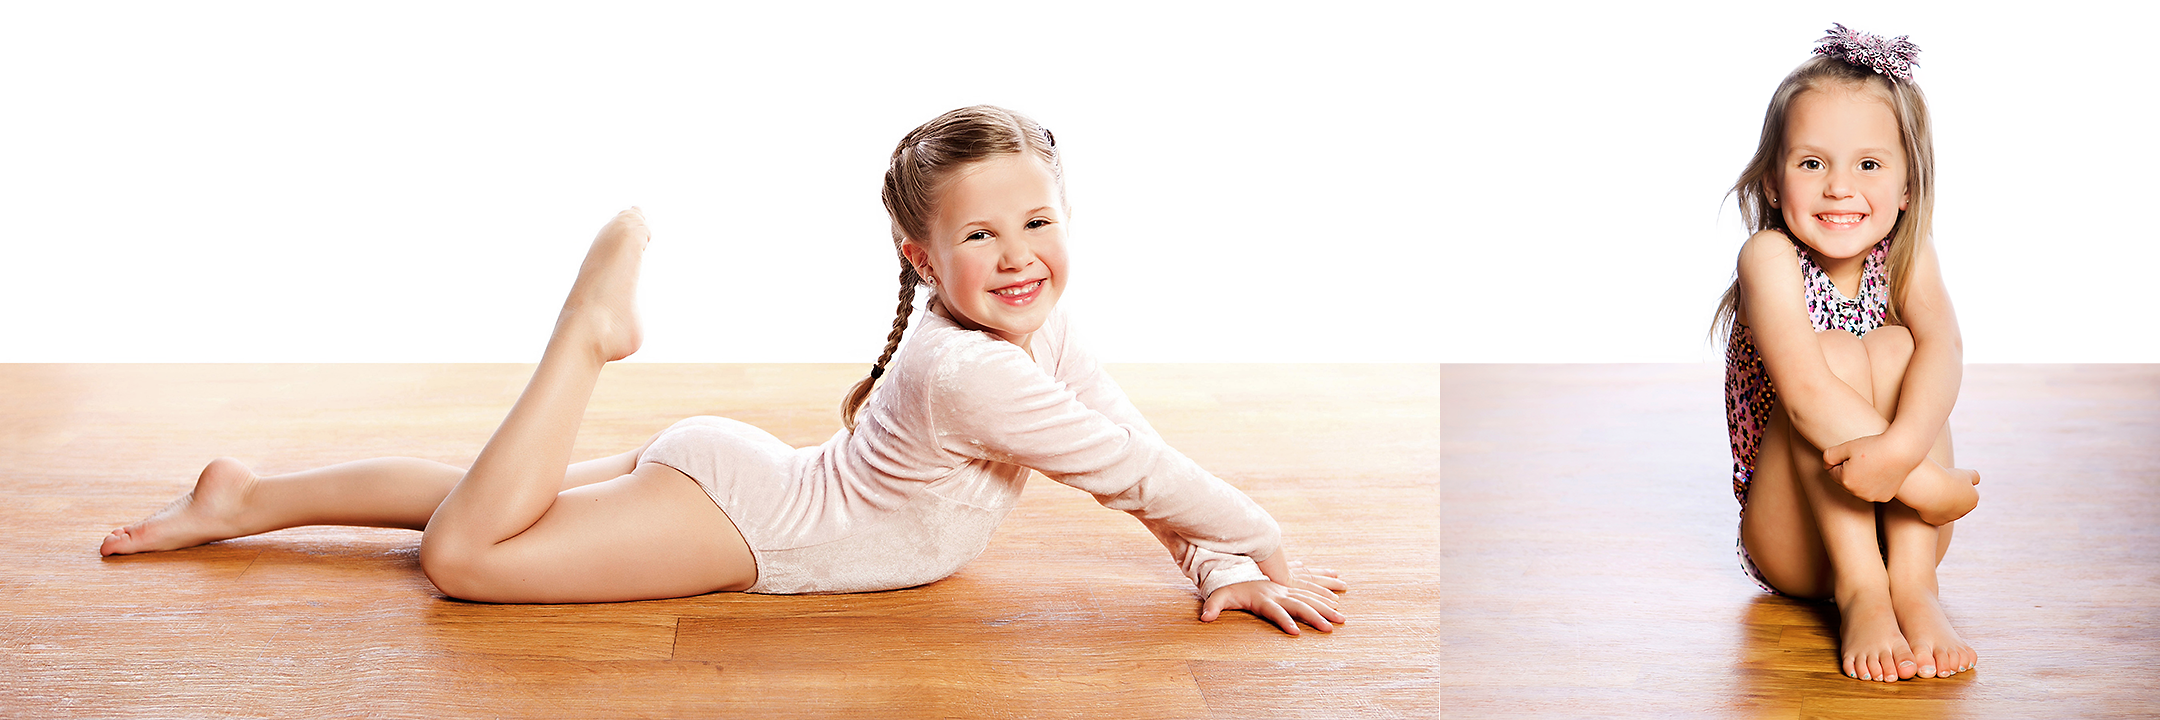 pre-school-gymnastics-photography-09